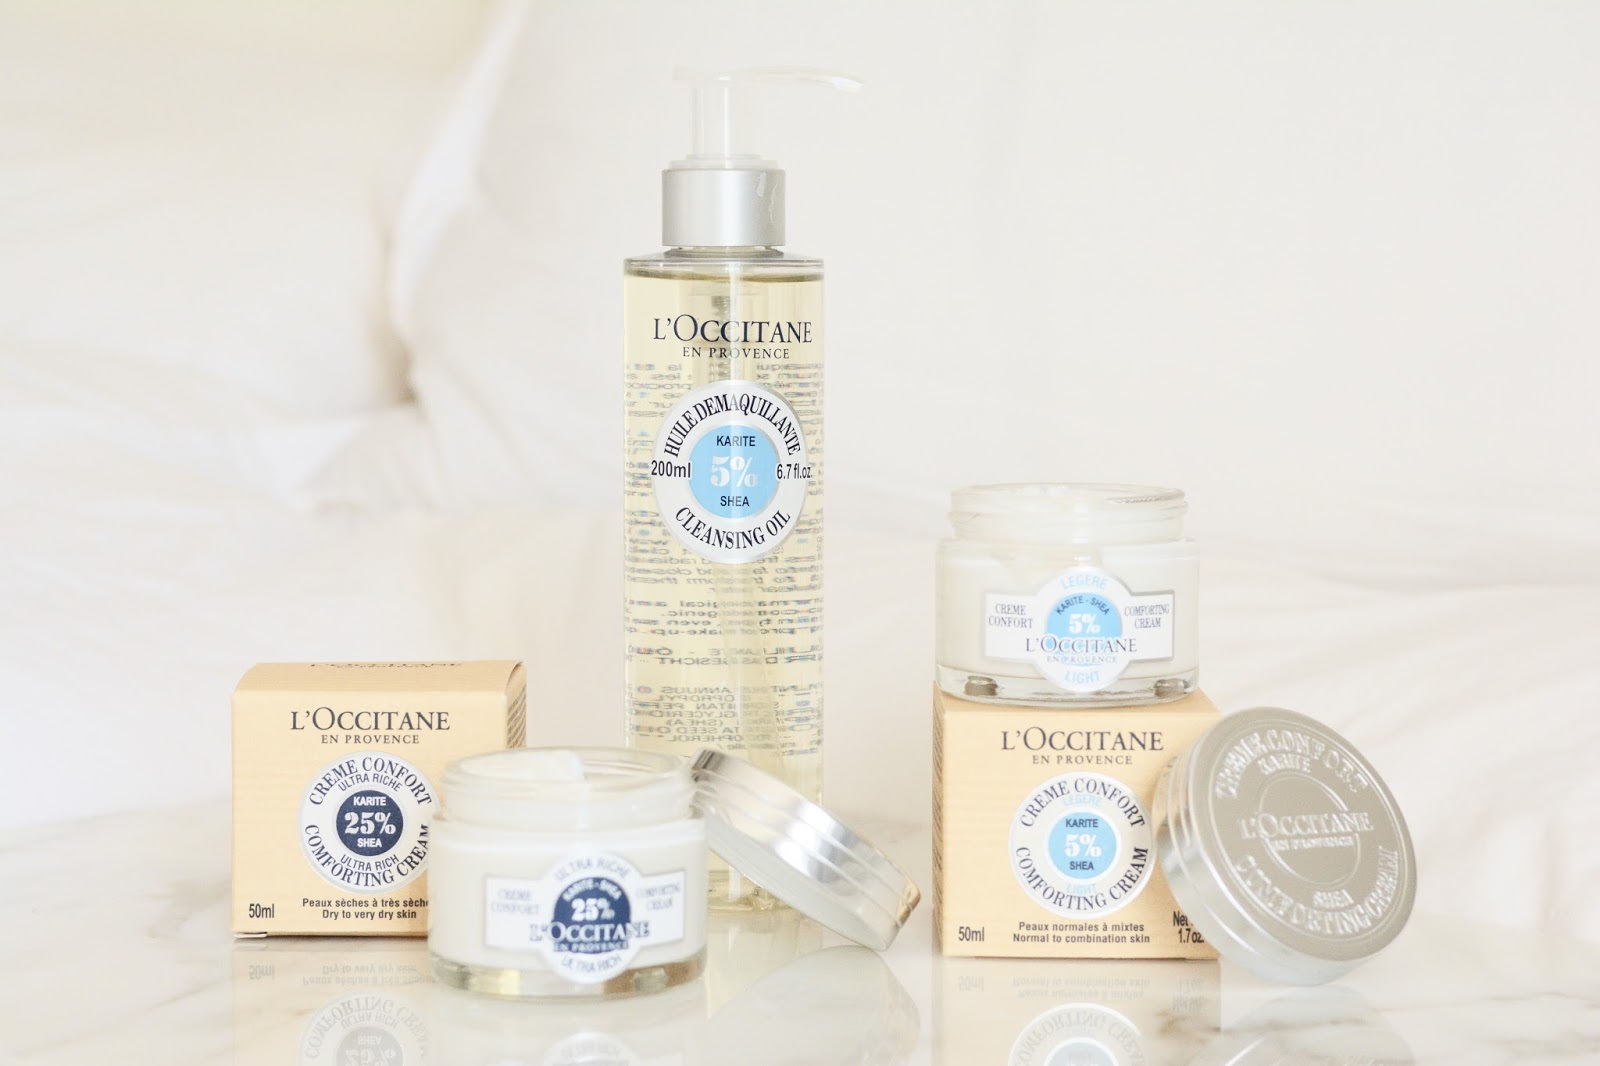 L'Occitane Shea Cleansing Oil Light Ultra Rich Comfort Cream Review Photos